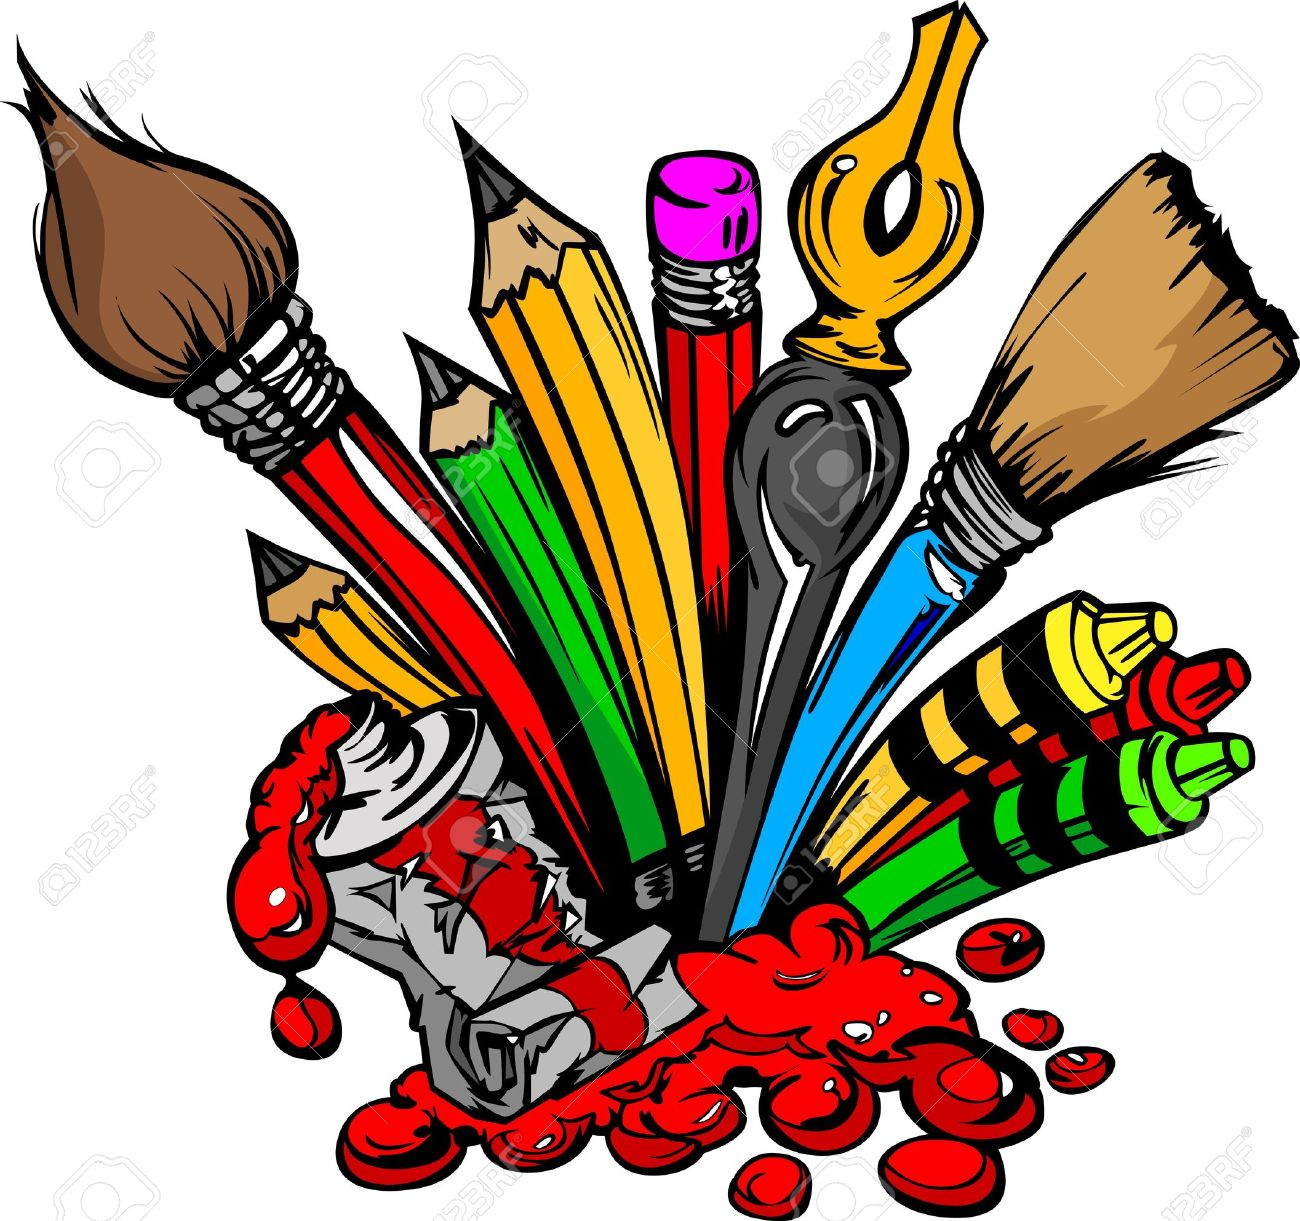 and crayons cartoon image art and back to school supplies paint brushes pencils oil paint pens - Cartoon Pictures Of Crayons